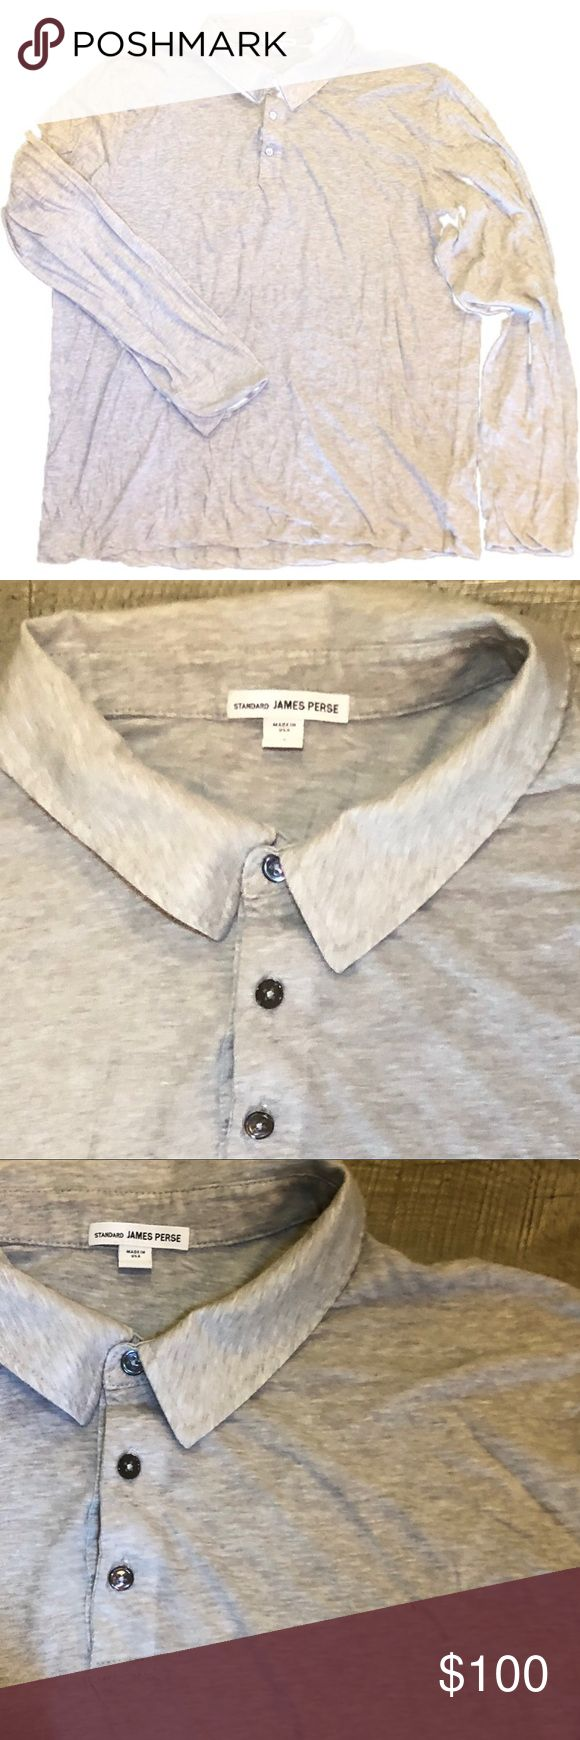 Revised Standard, Polo Homme, Blanc (White), X-LargeJames Perse